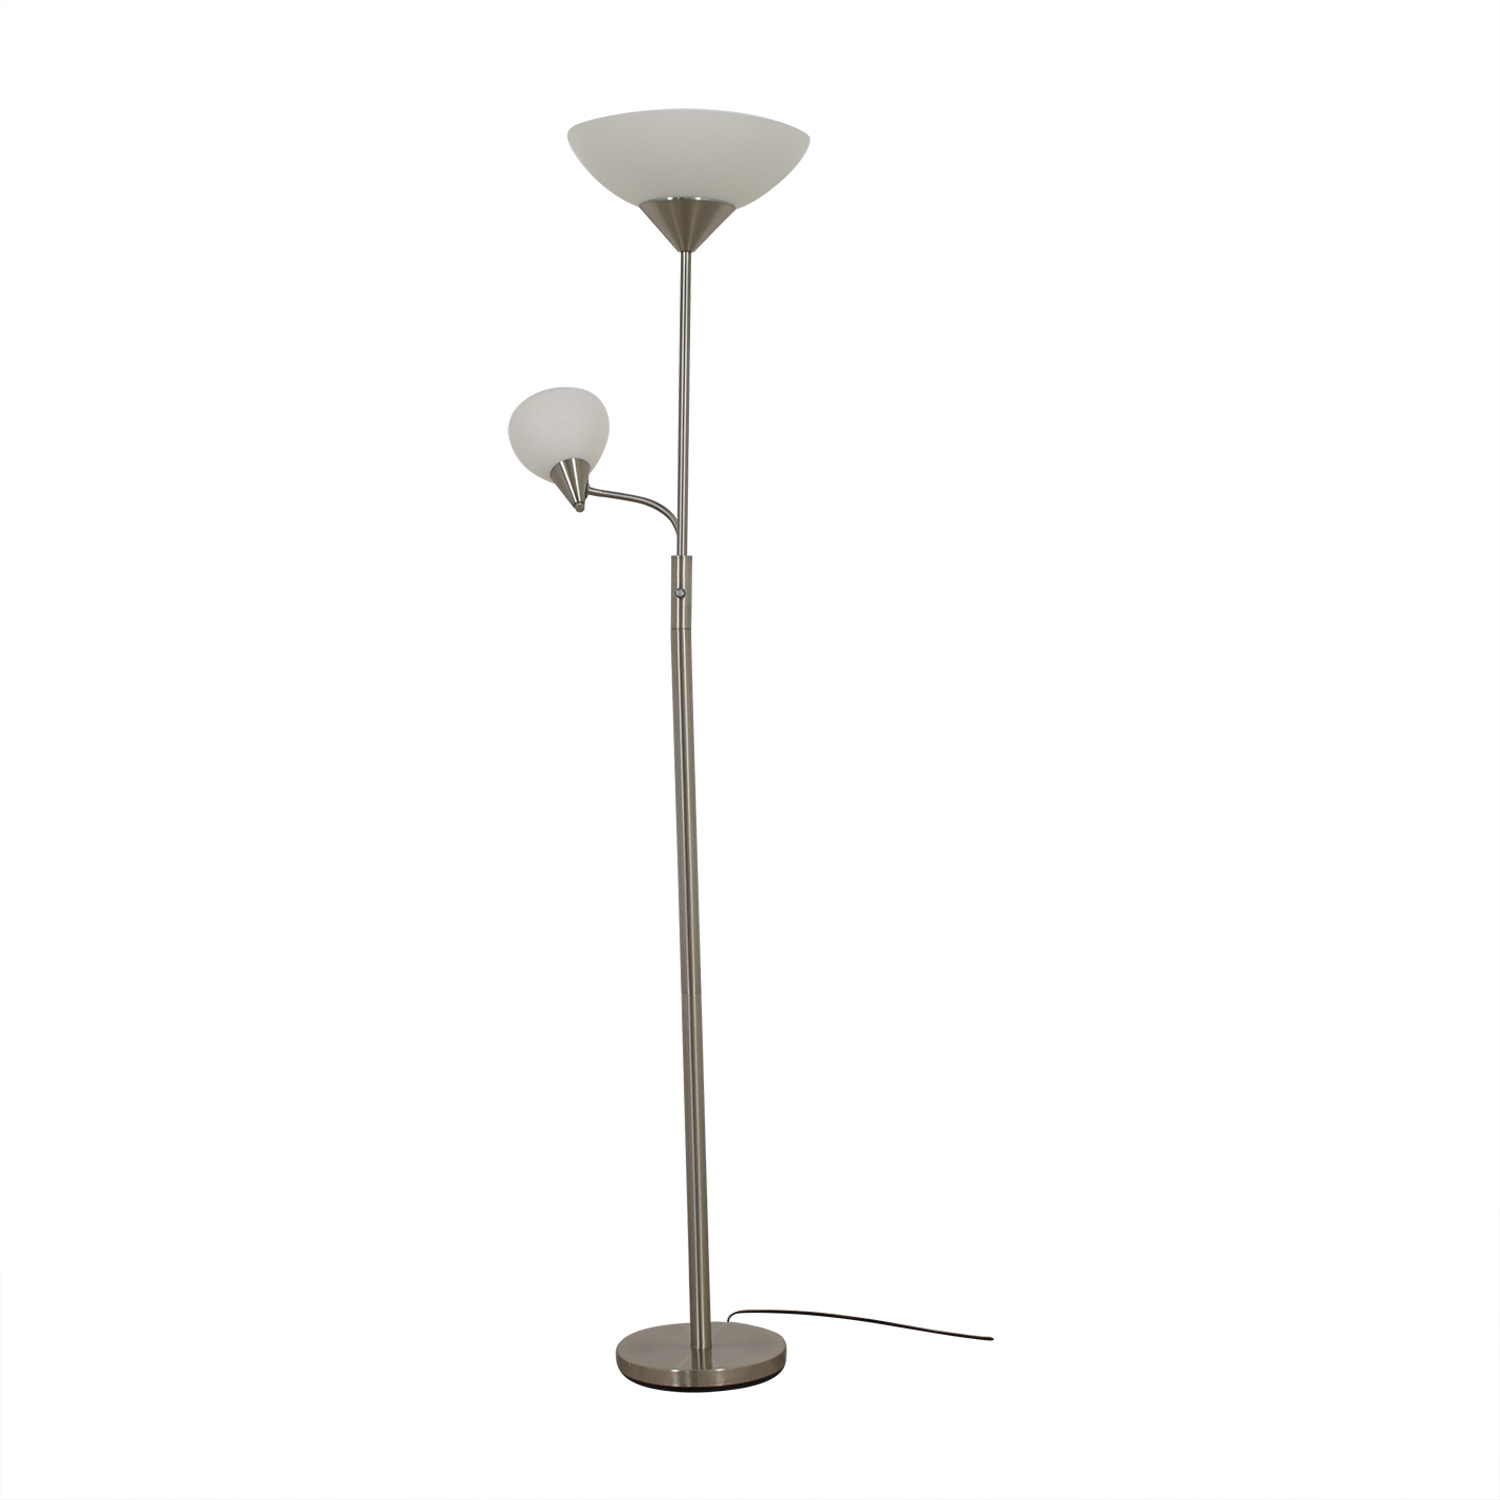 buy  Floor Lamp with Adjustable Reading Lamp online